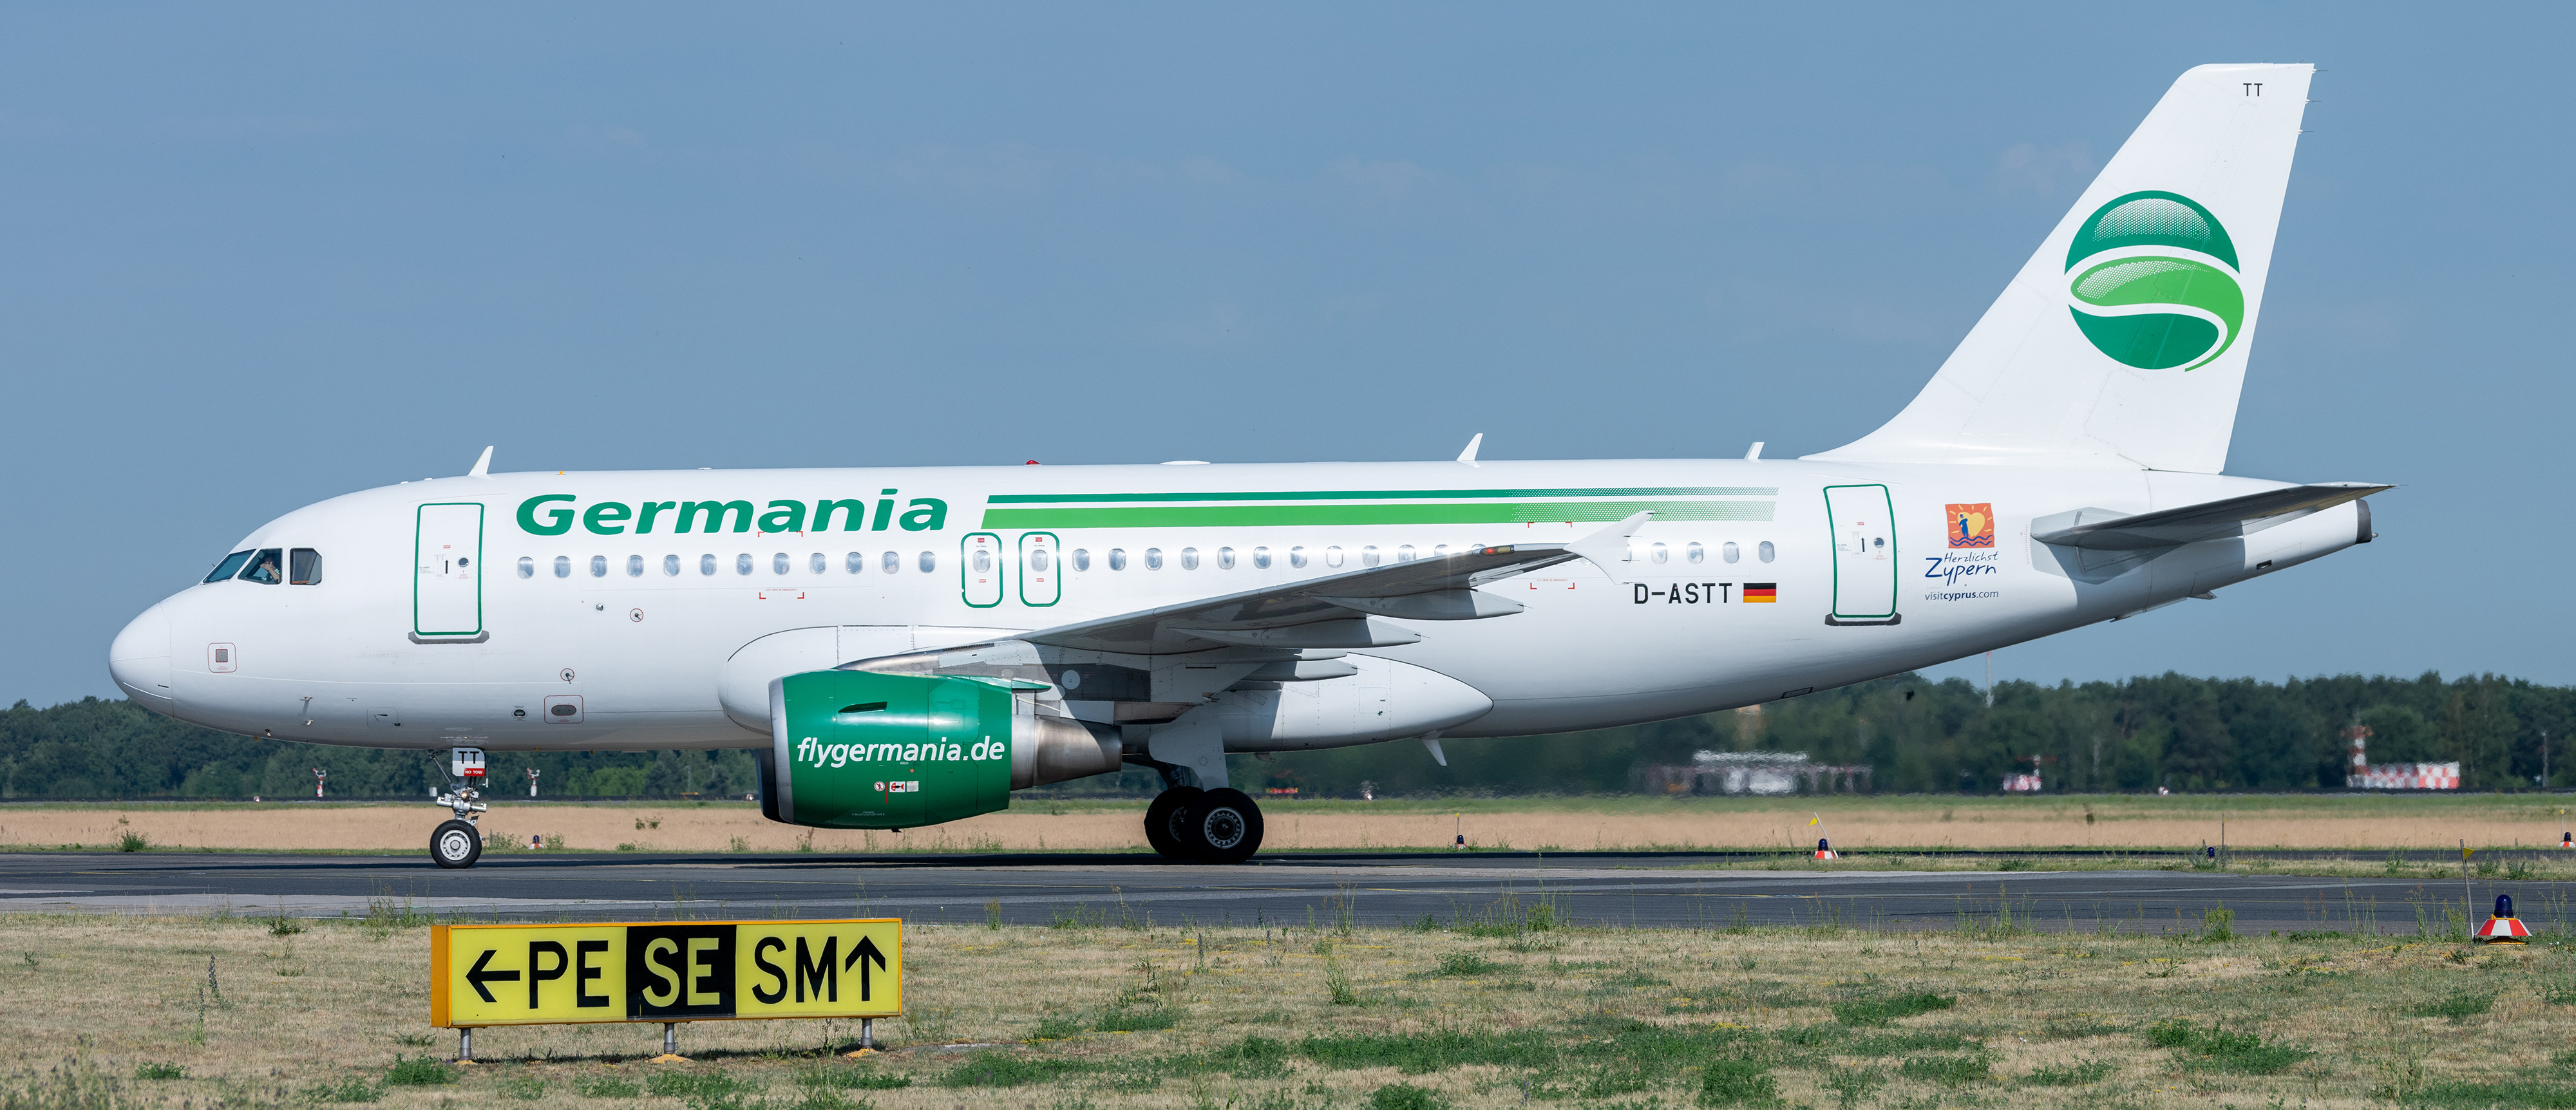 All Germania flights discontinued